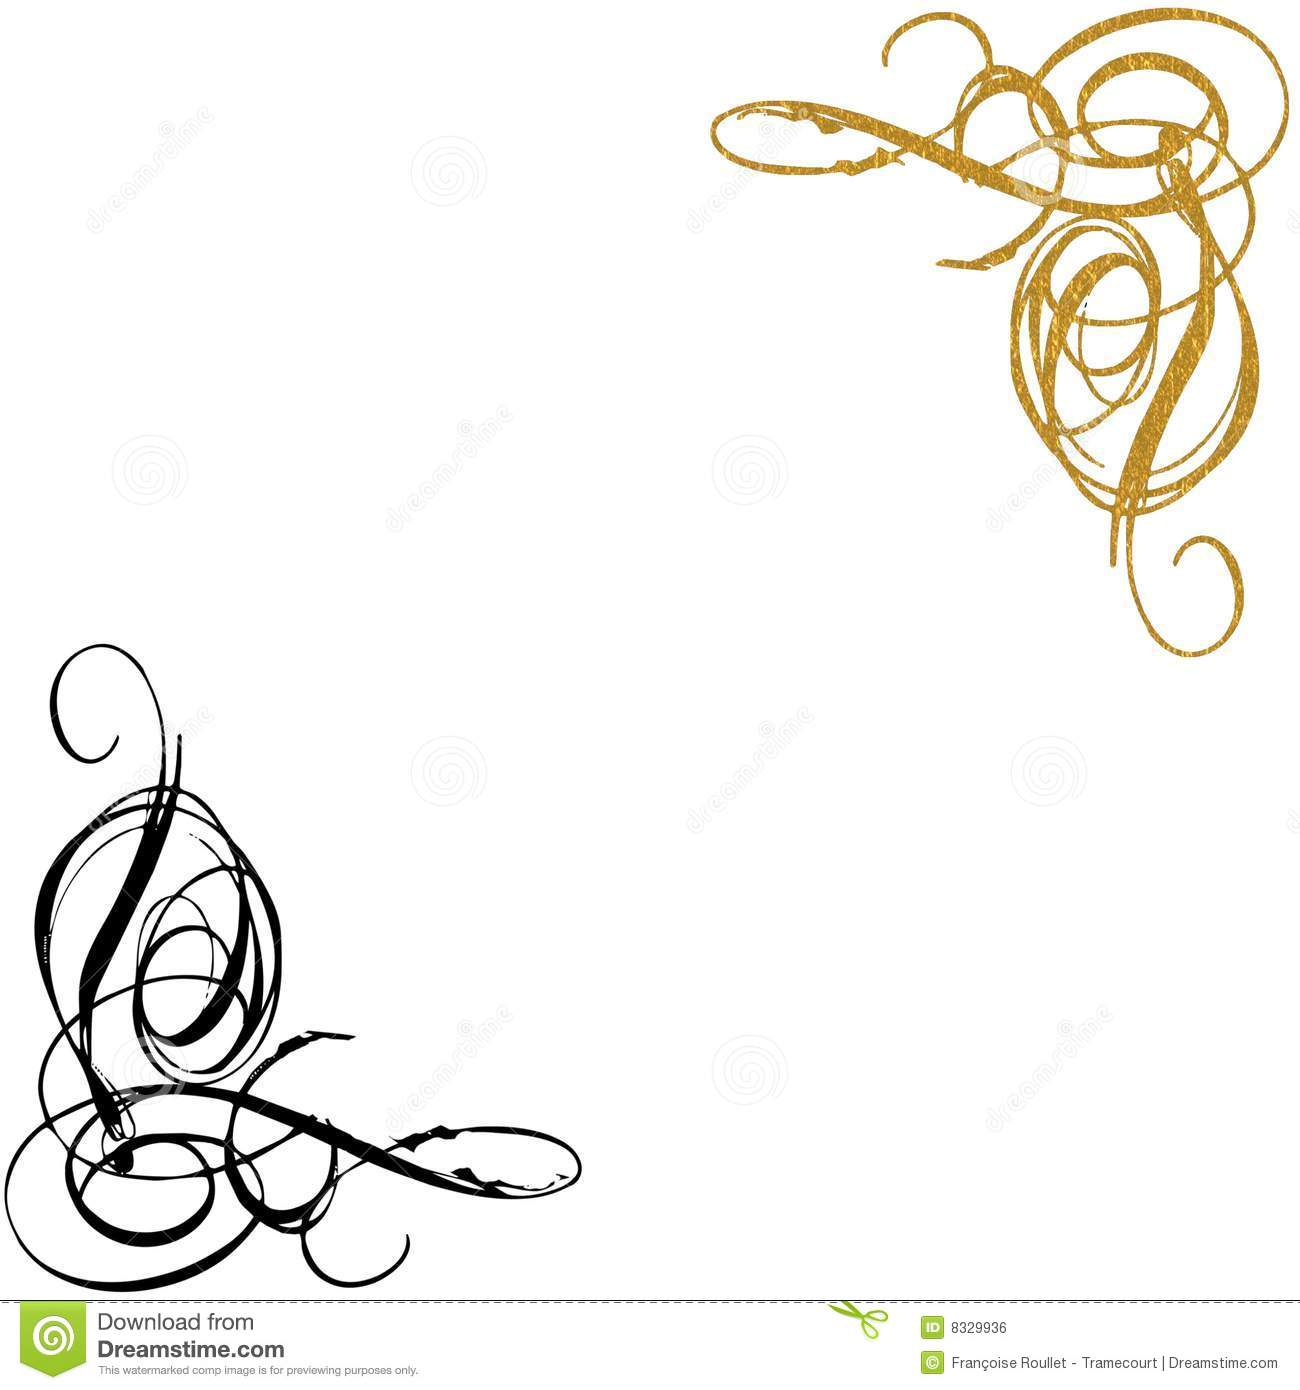 Gold Swirl Clipart - Clipart Suggest